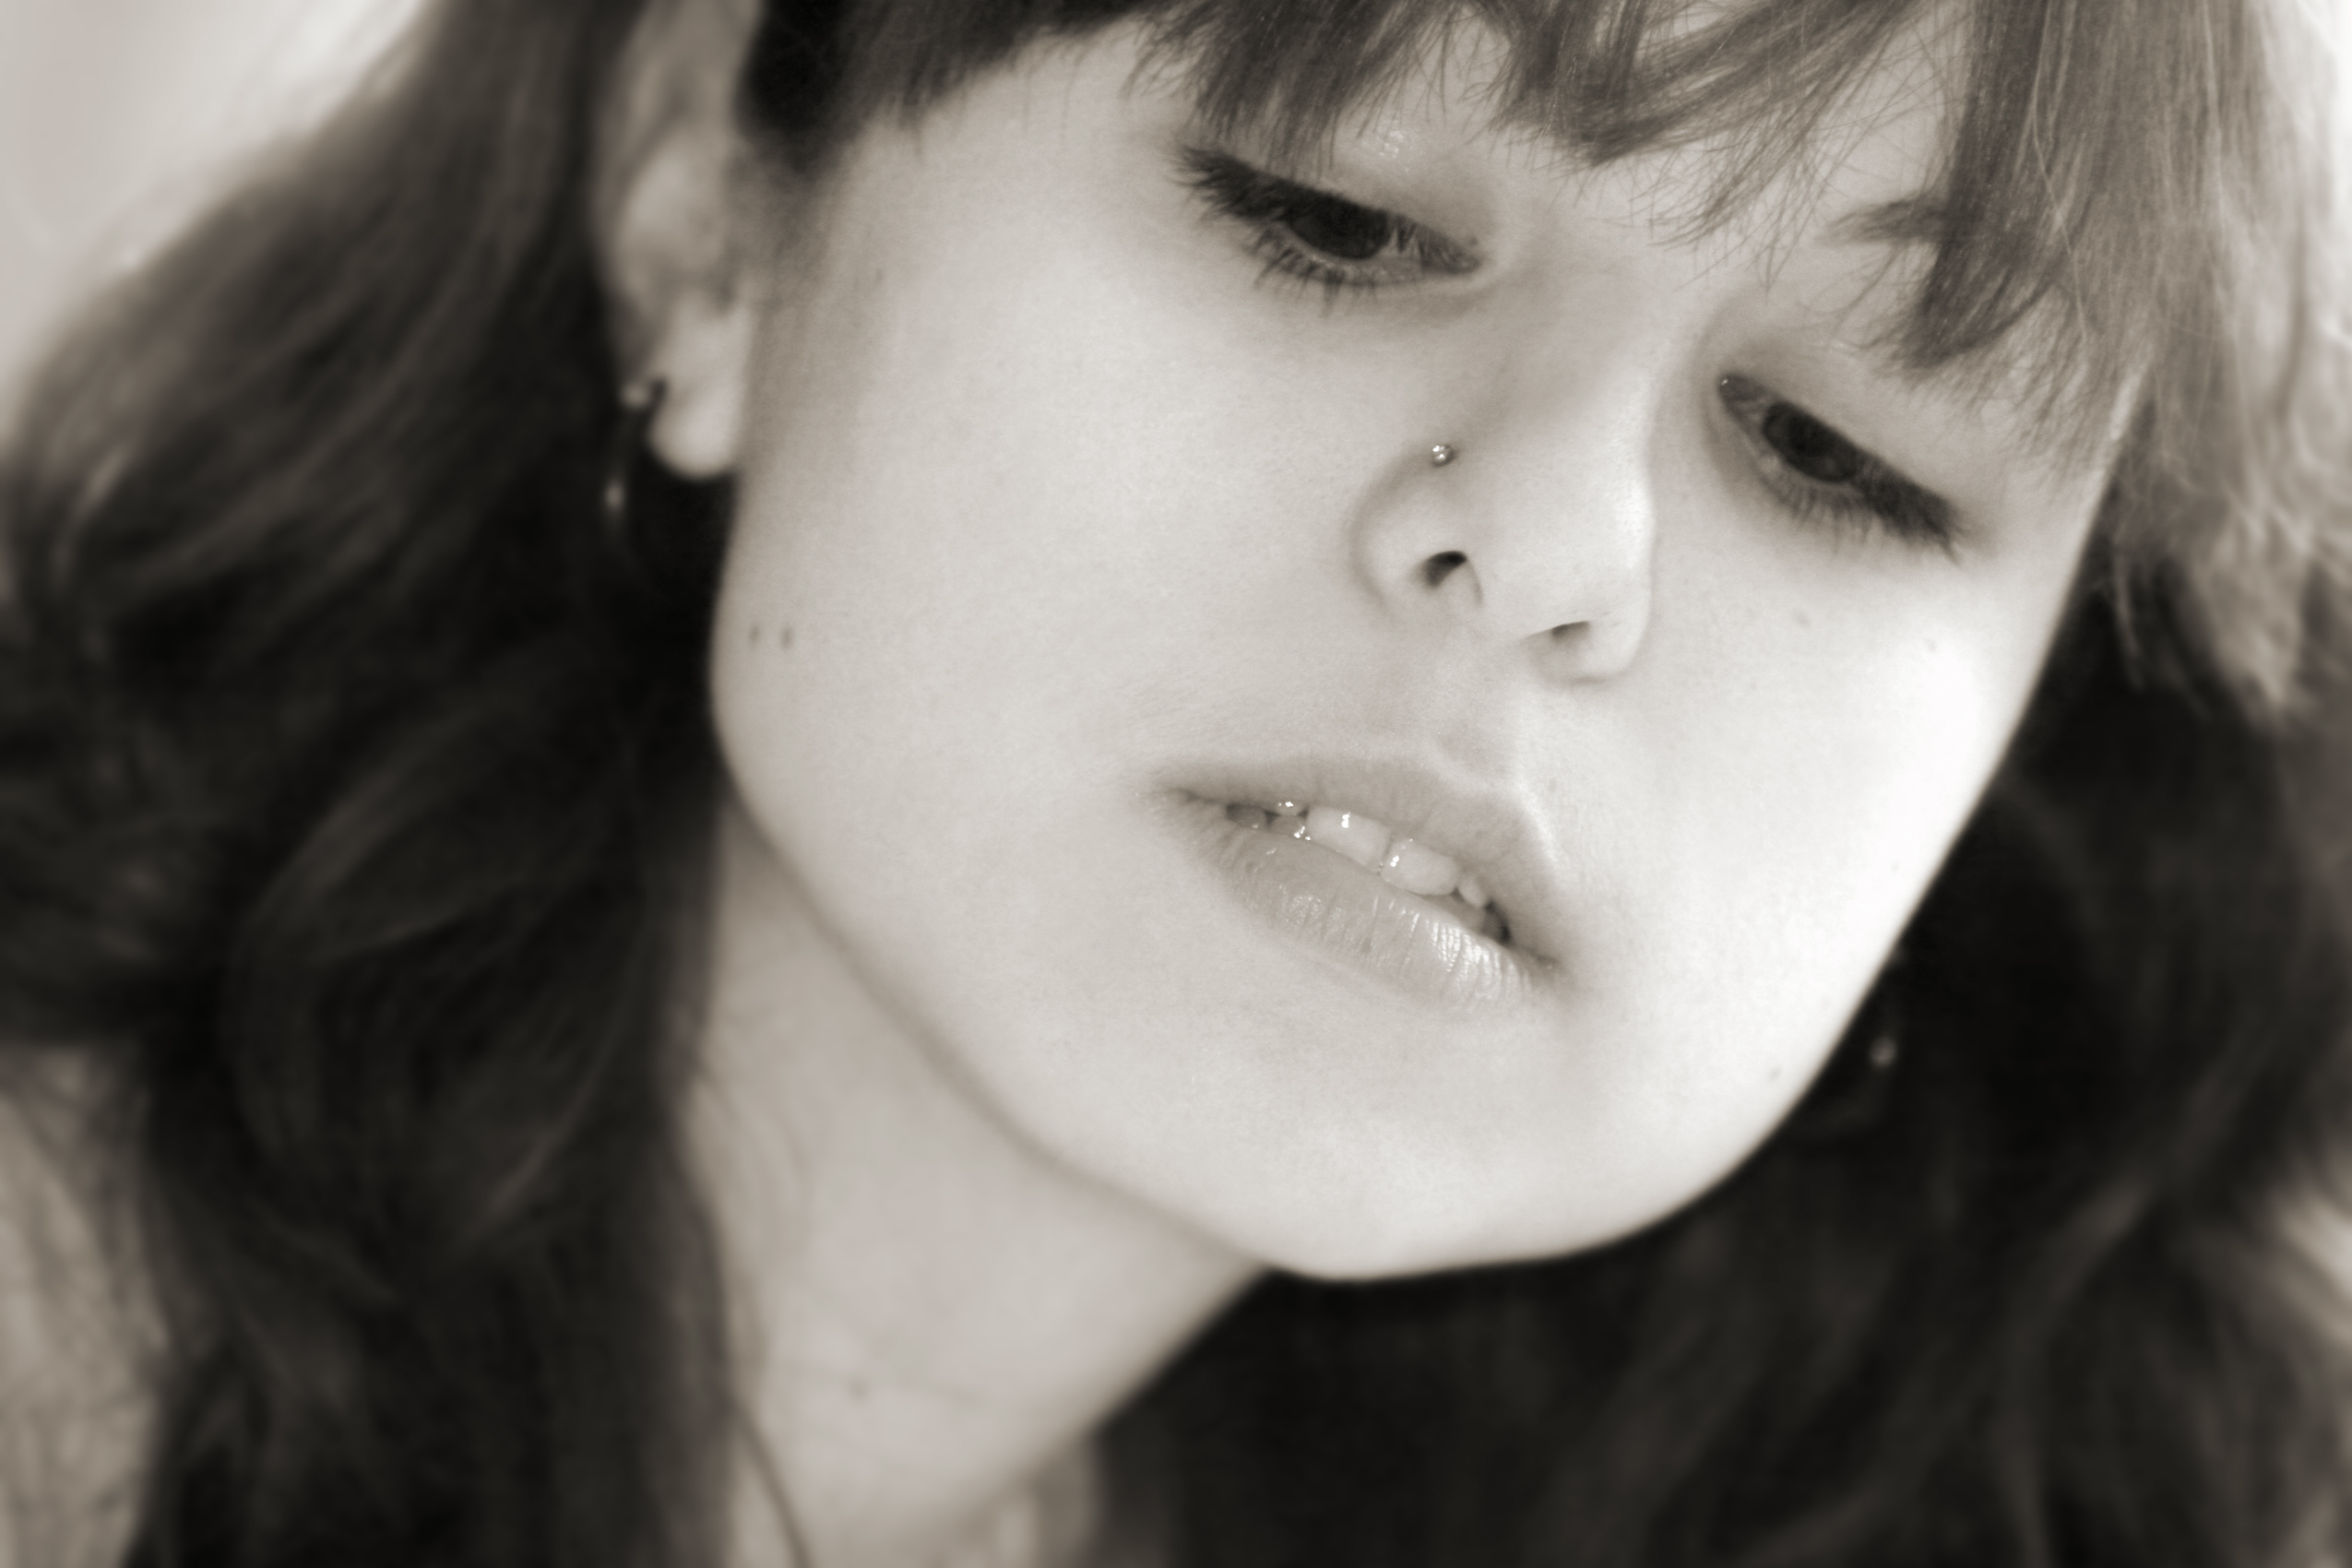 Girl looking down- Talking Helps ease Emotional Distress ... - photo#23